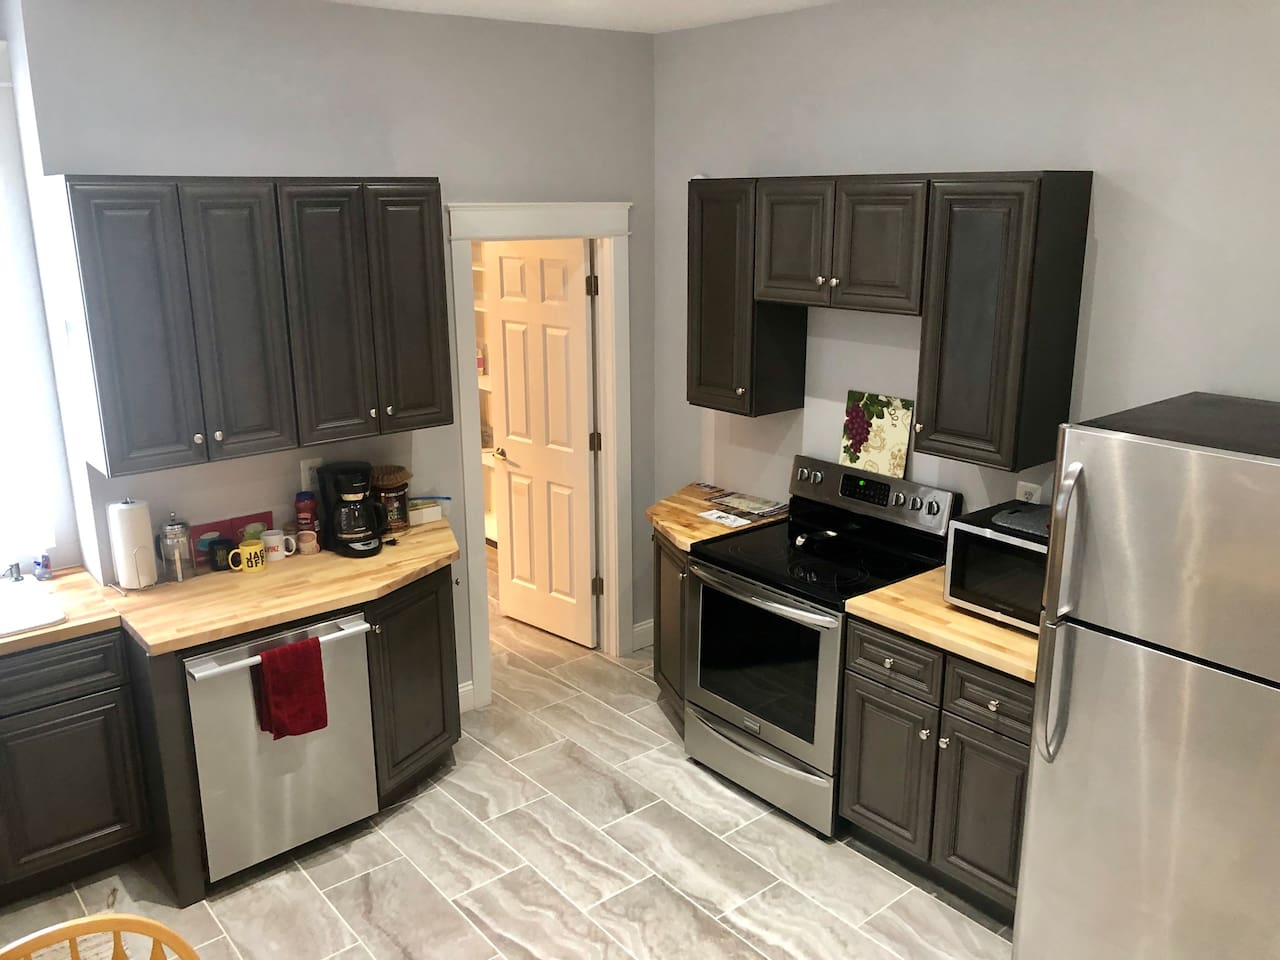 Fully equipped Kitchen. Lots of cabinets for storage.